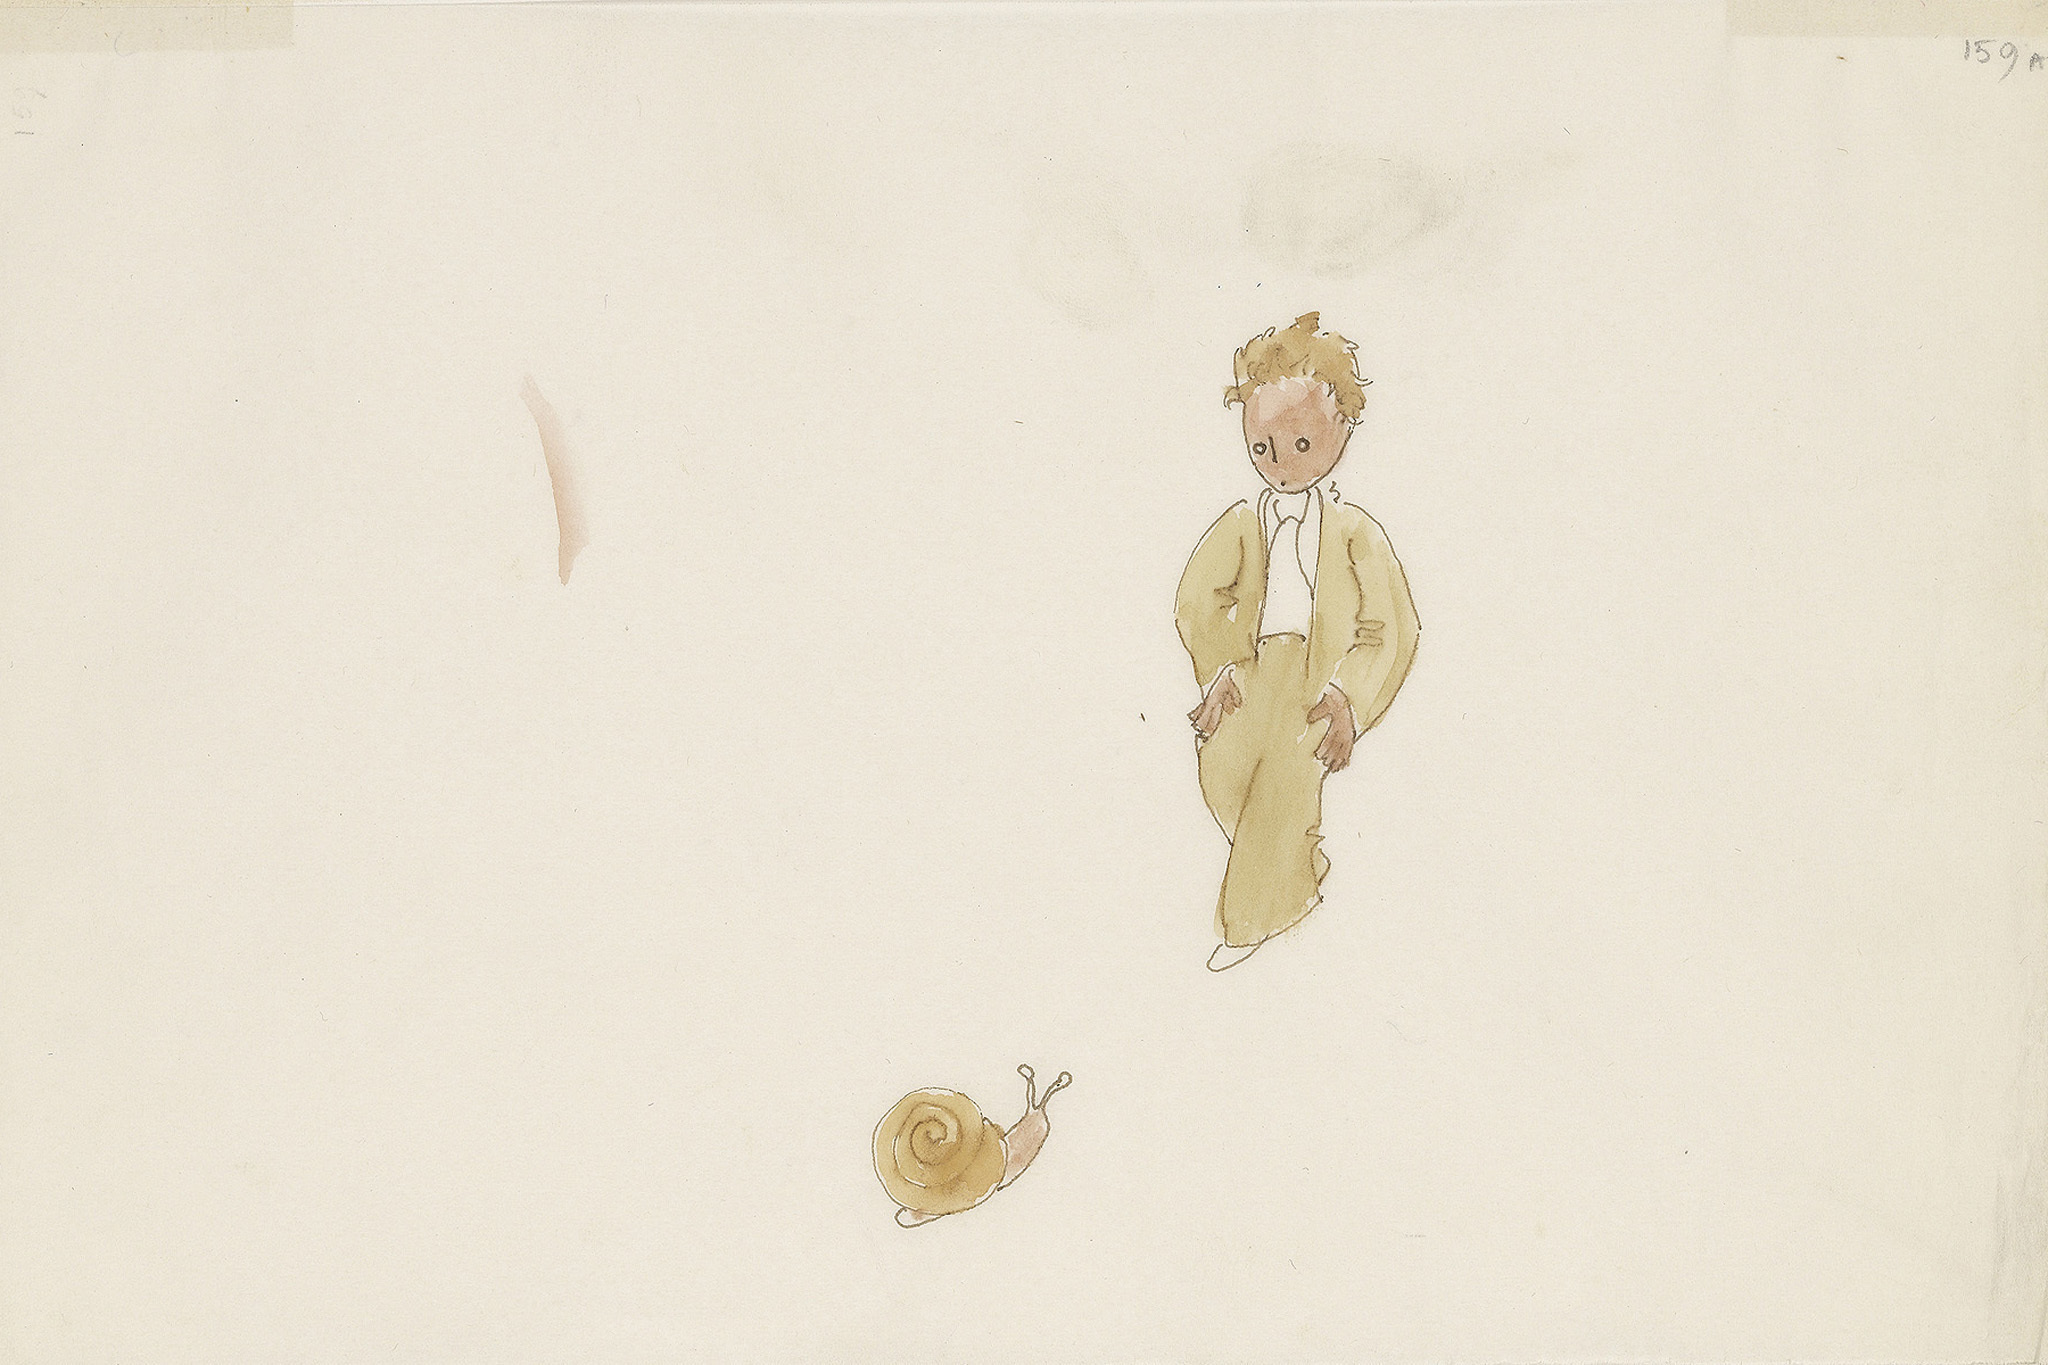 Little Prince New York the little prince: a new york story"